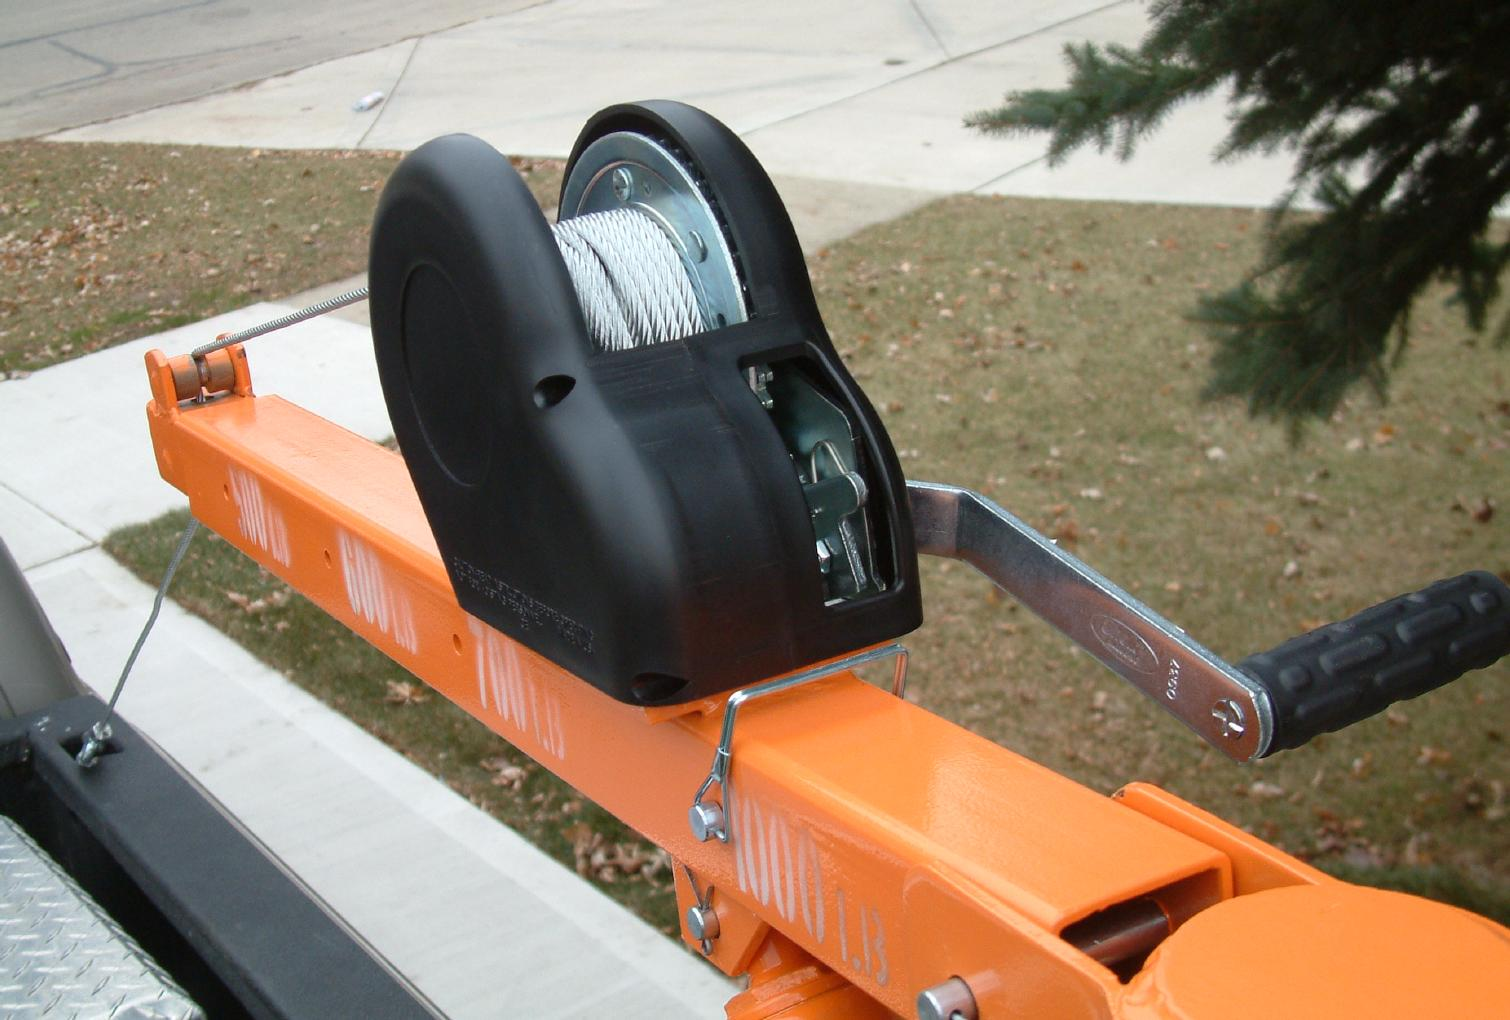 Replacement Winch from <A HREF=http://www.mcmaster.com/>McMaster-Carr</A>